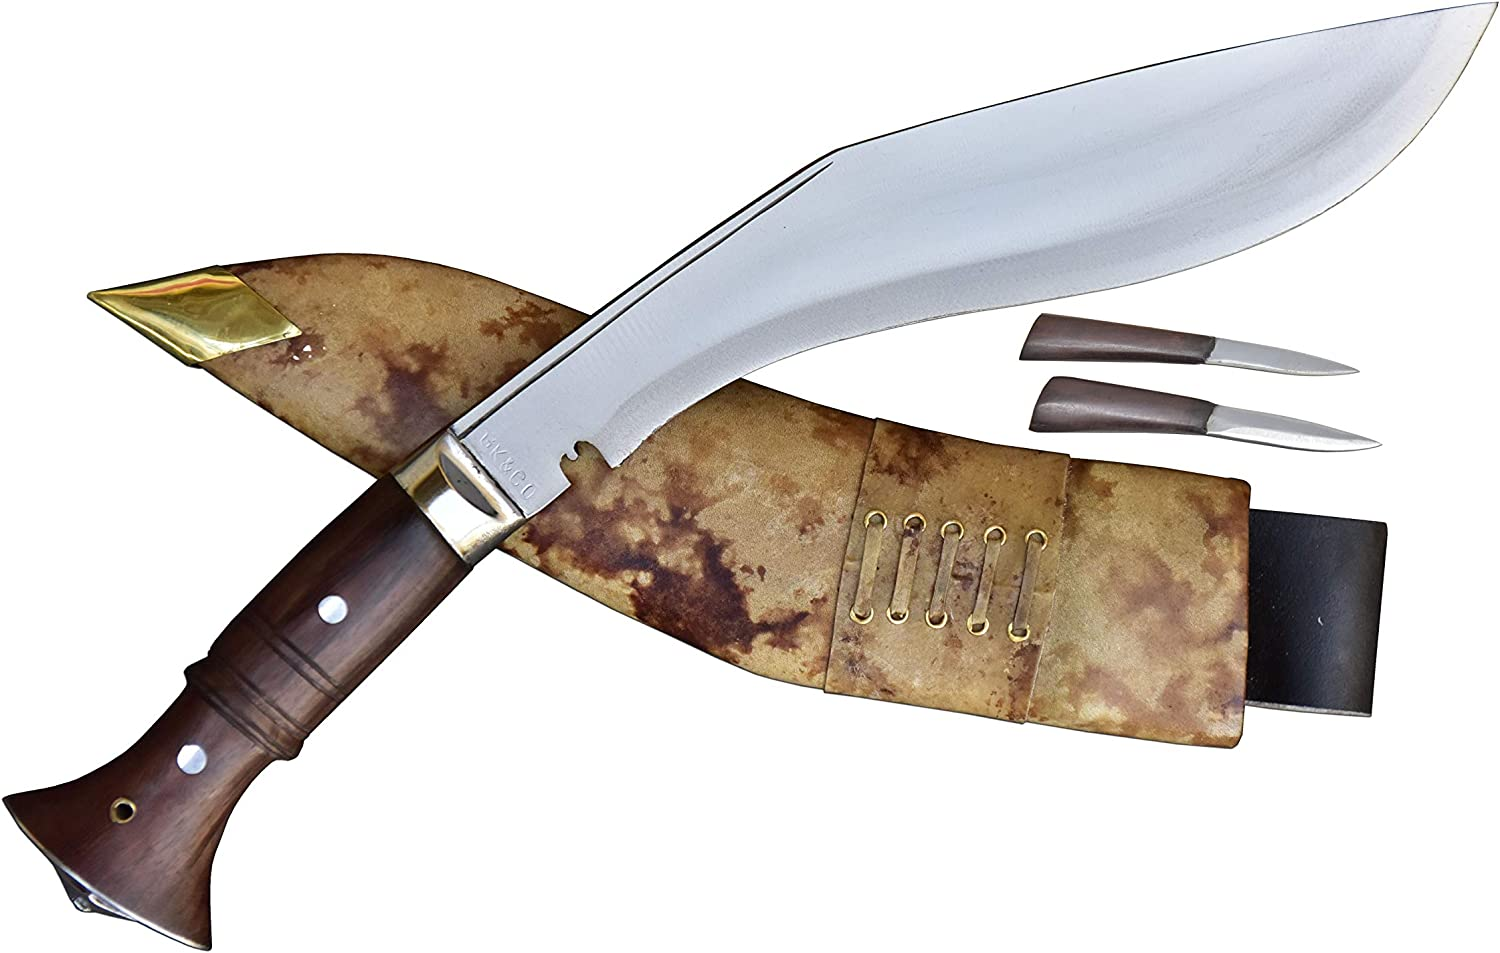 This is an image of a 12 inches kukri knife with brown-colored handle, two smaller knives, and a sheath.